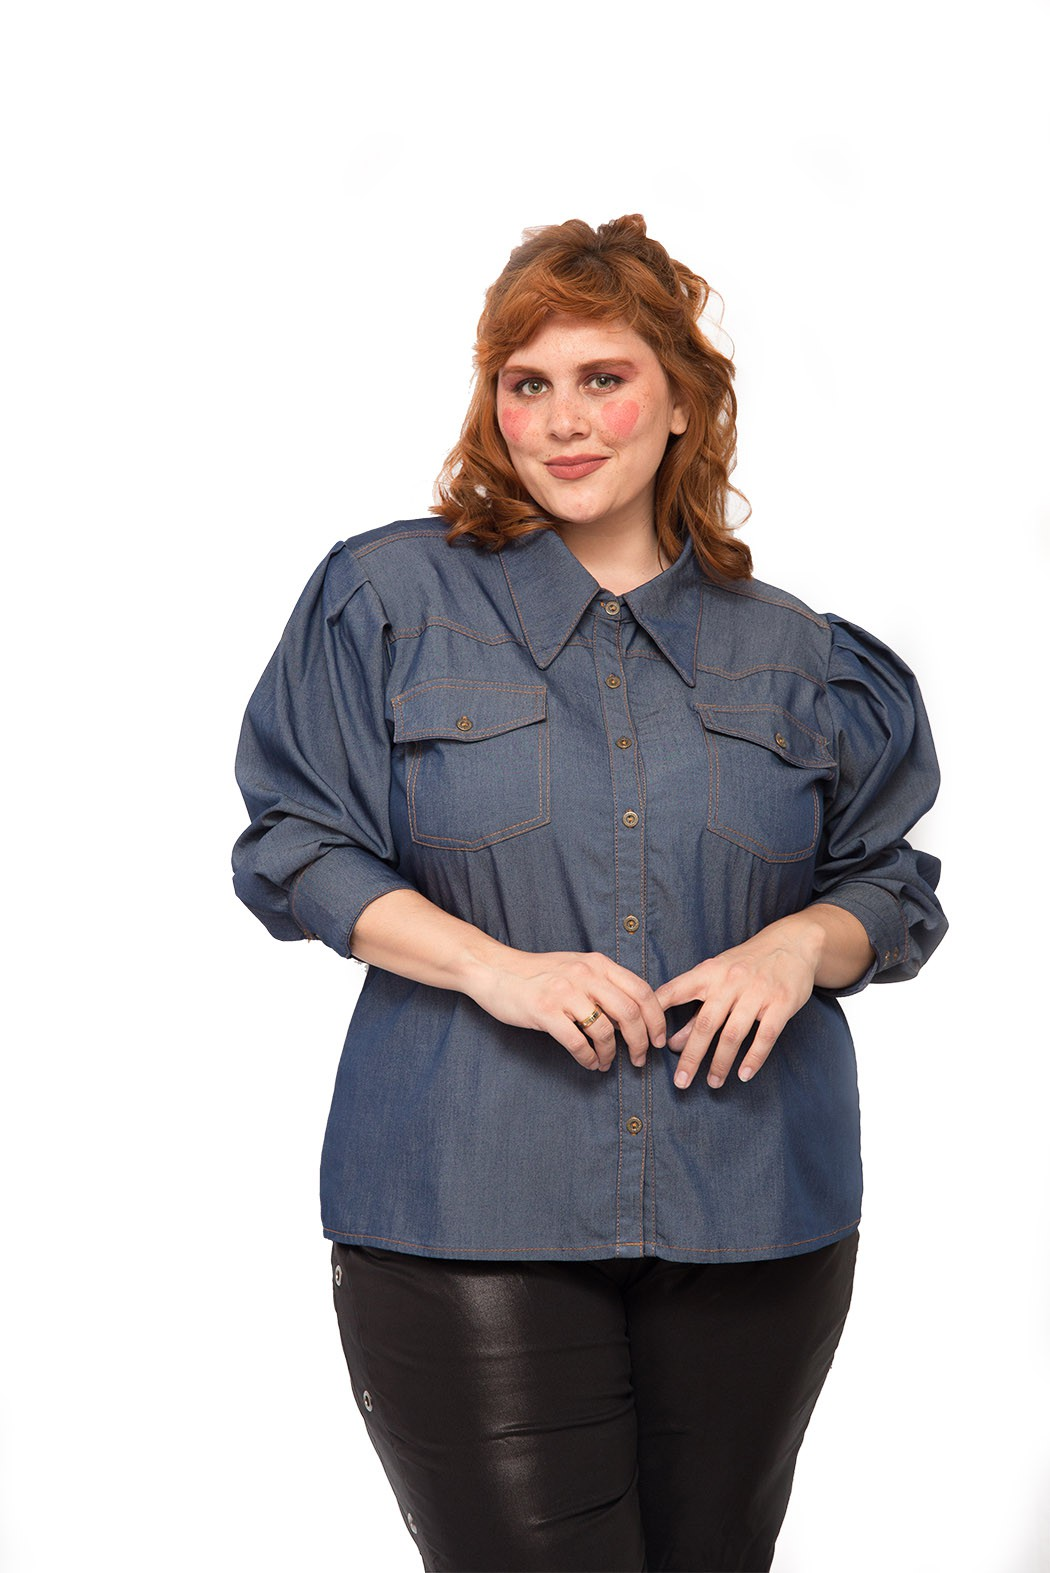 Camisa jeans plus size azul